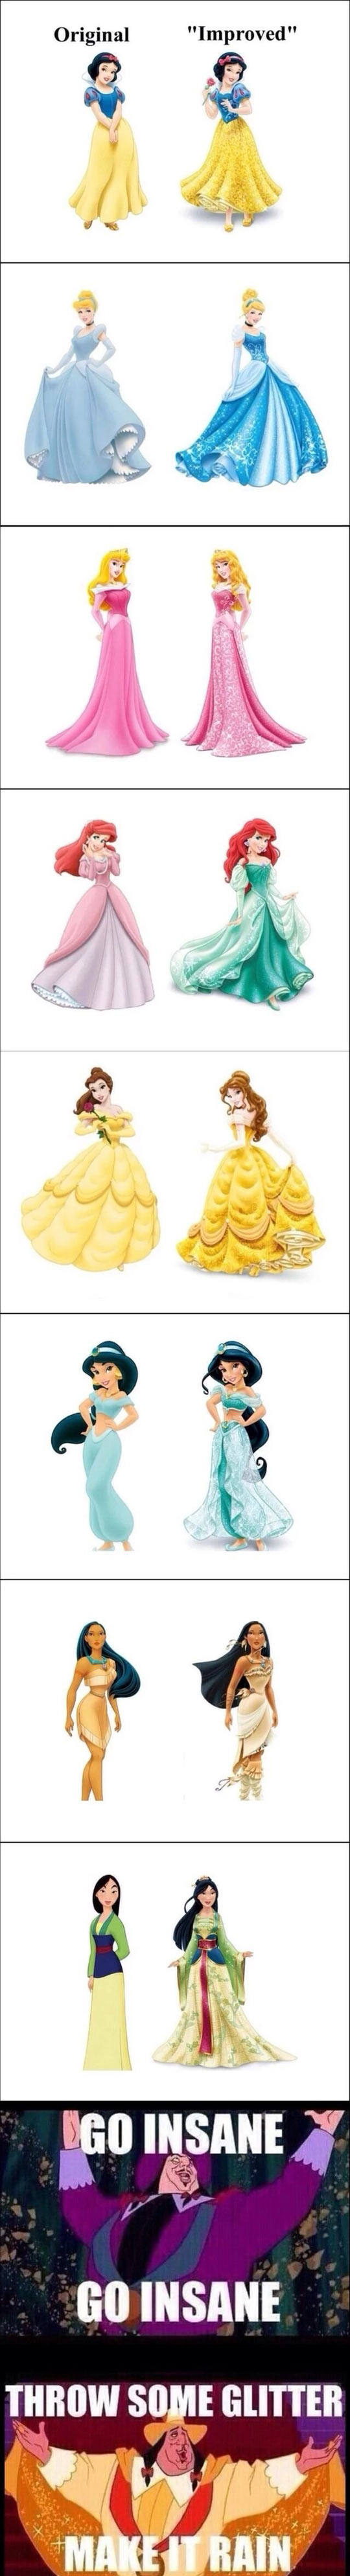 cool-improved-princesses-white-snow-belle